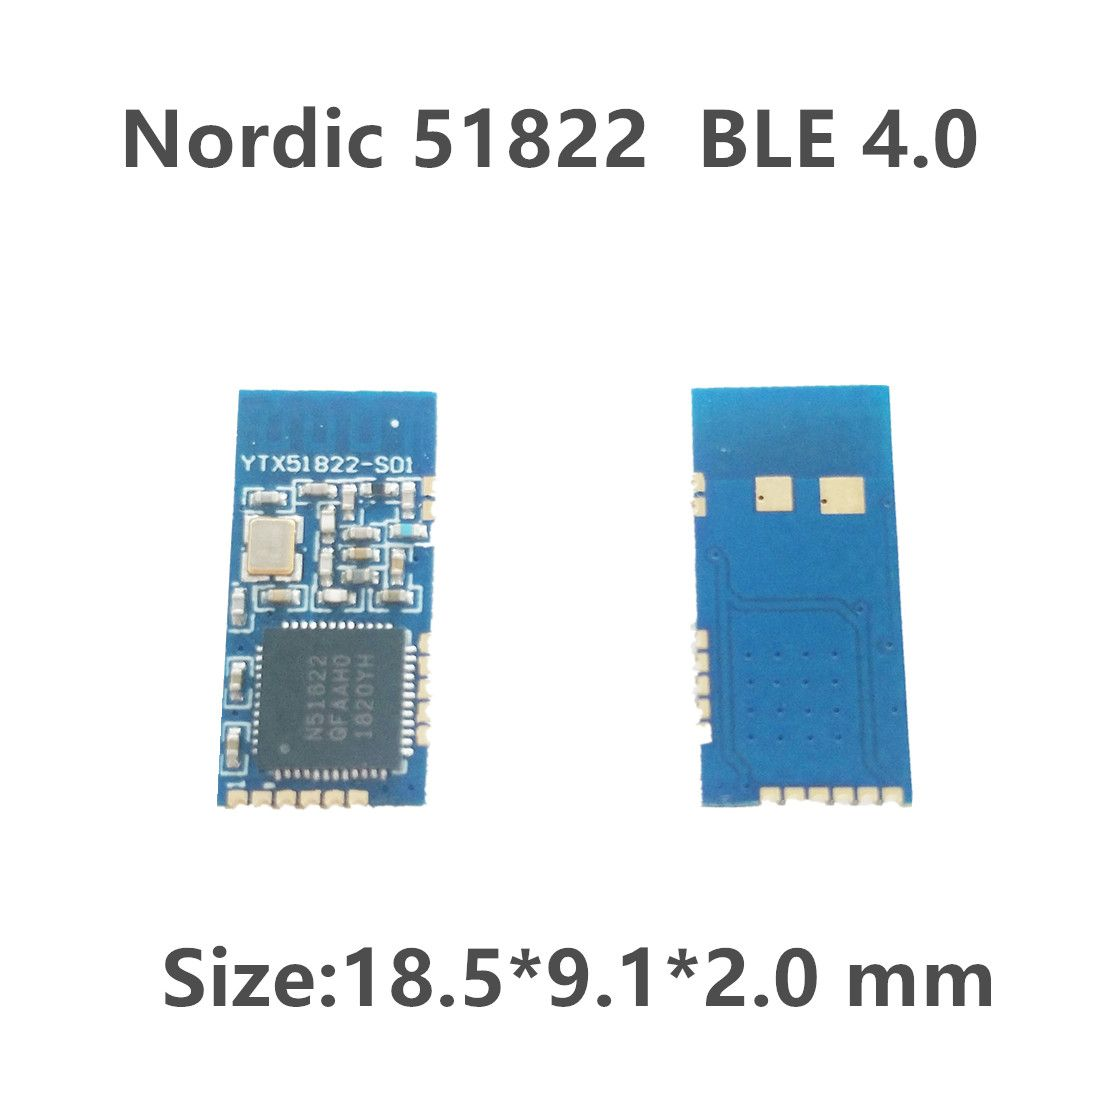 Nordic BLE 4.0 nRF51822 Controller Chip Bluetooth Module Small Size 18.5 x 9.1x 2.0mm 5 Pack